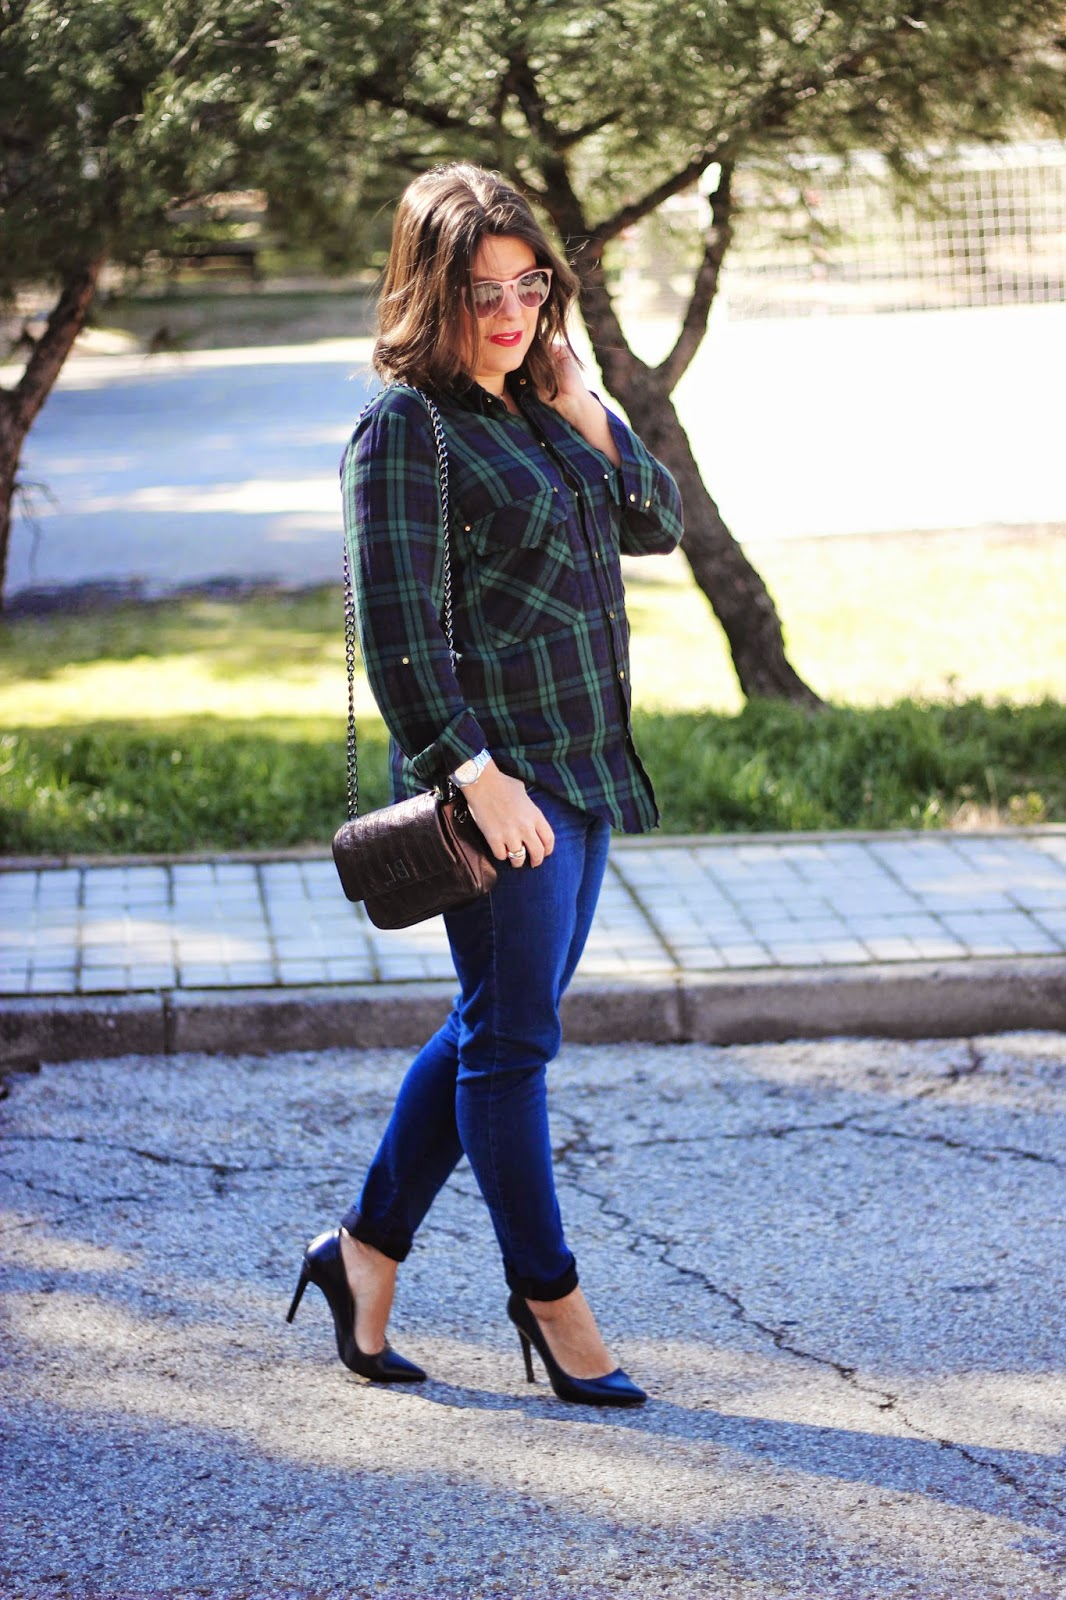 photo-look-street_style-plaid_shirt-dark_jeans-metallic_bag